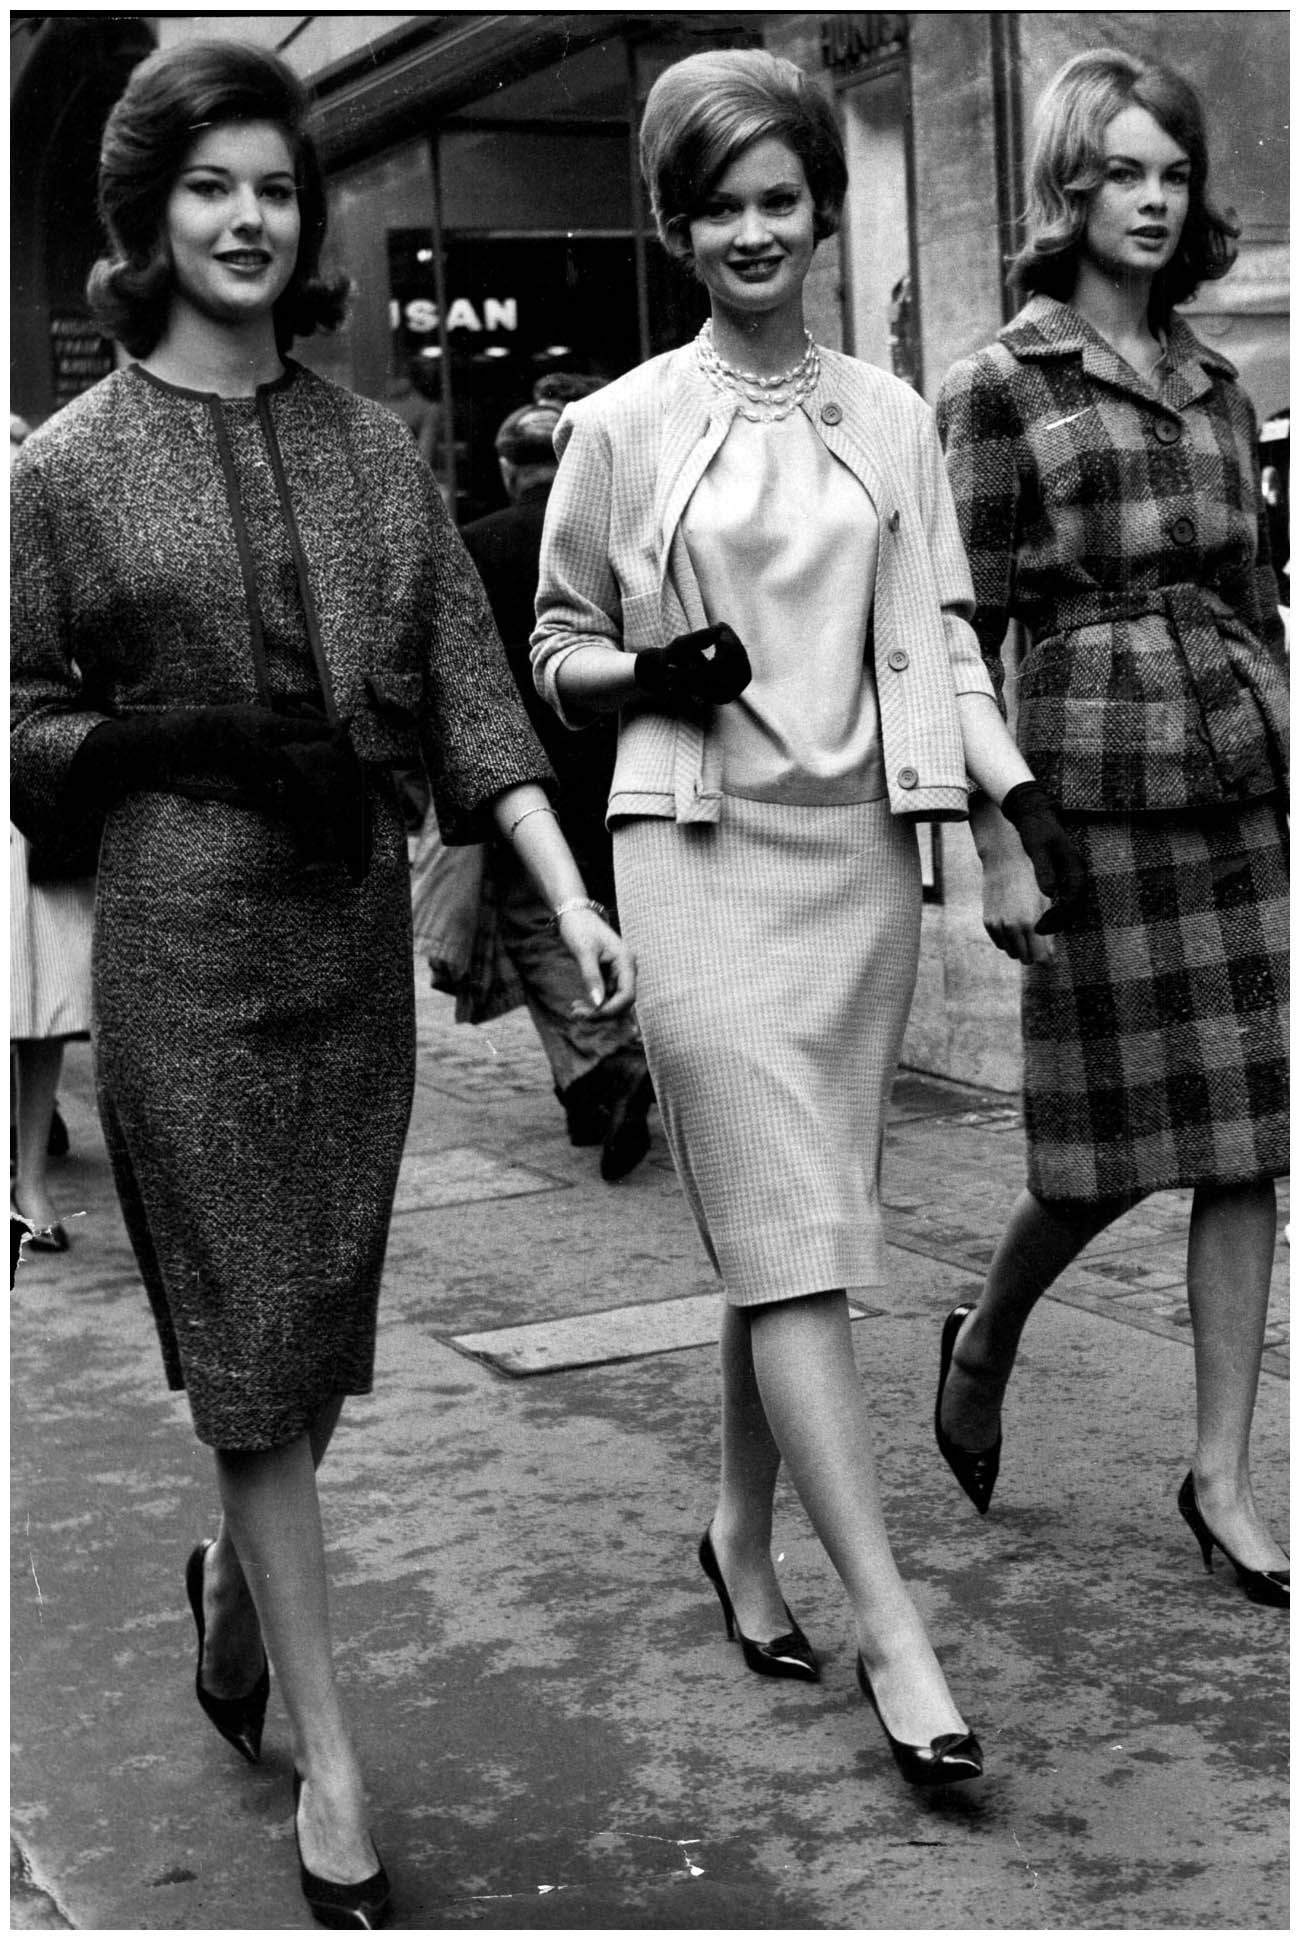 1960 - As a graduate of Lucie Clayton's modelling school, Jean - on the  right - was photographed with fellow pupils